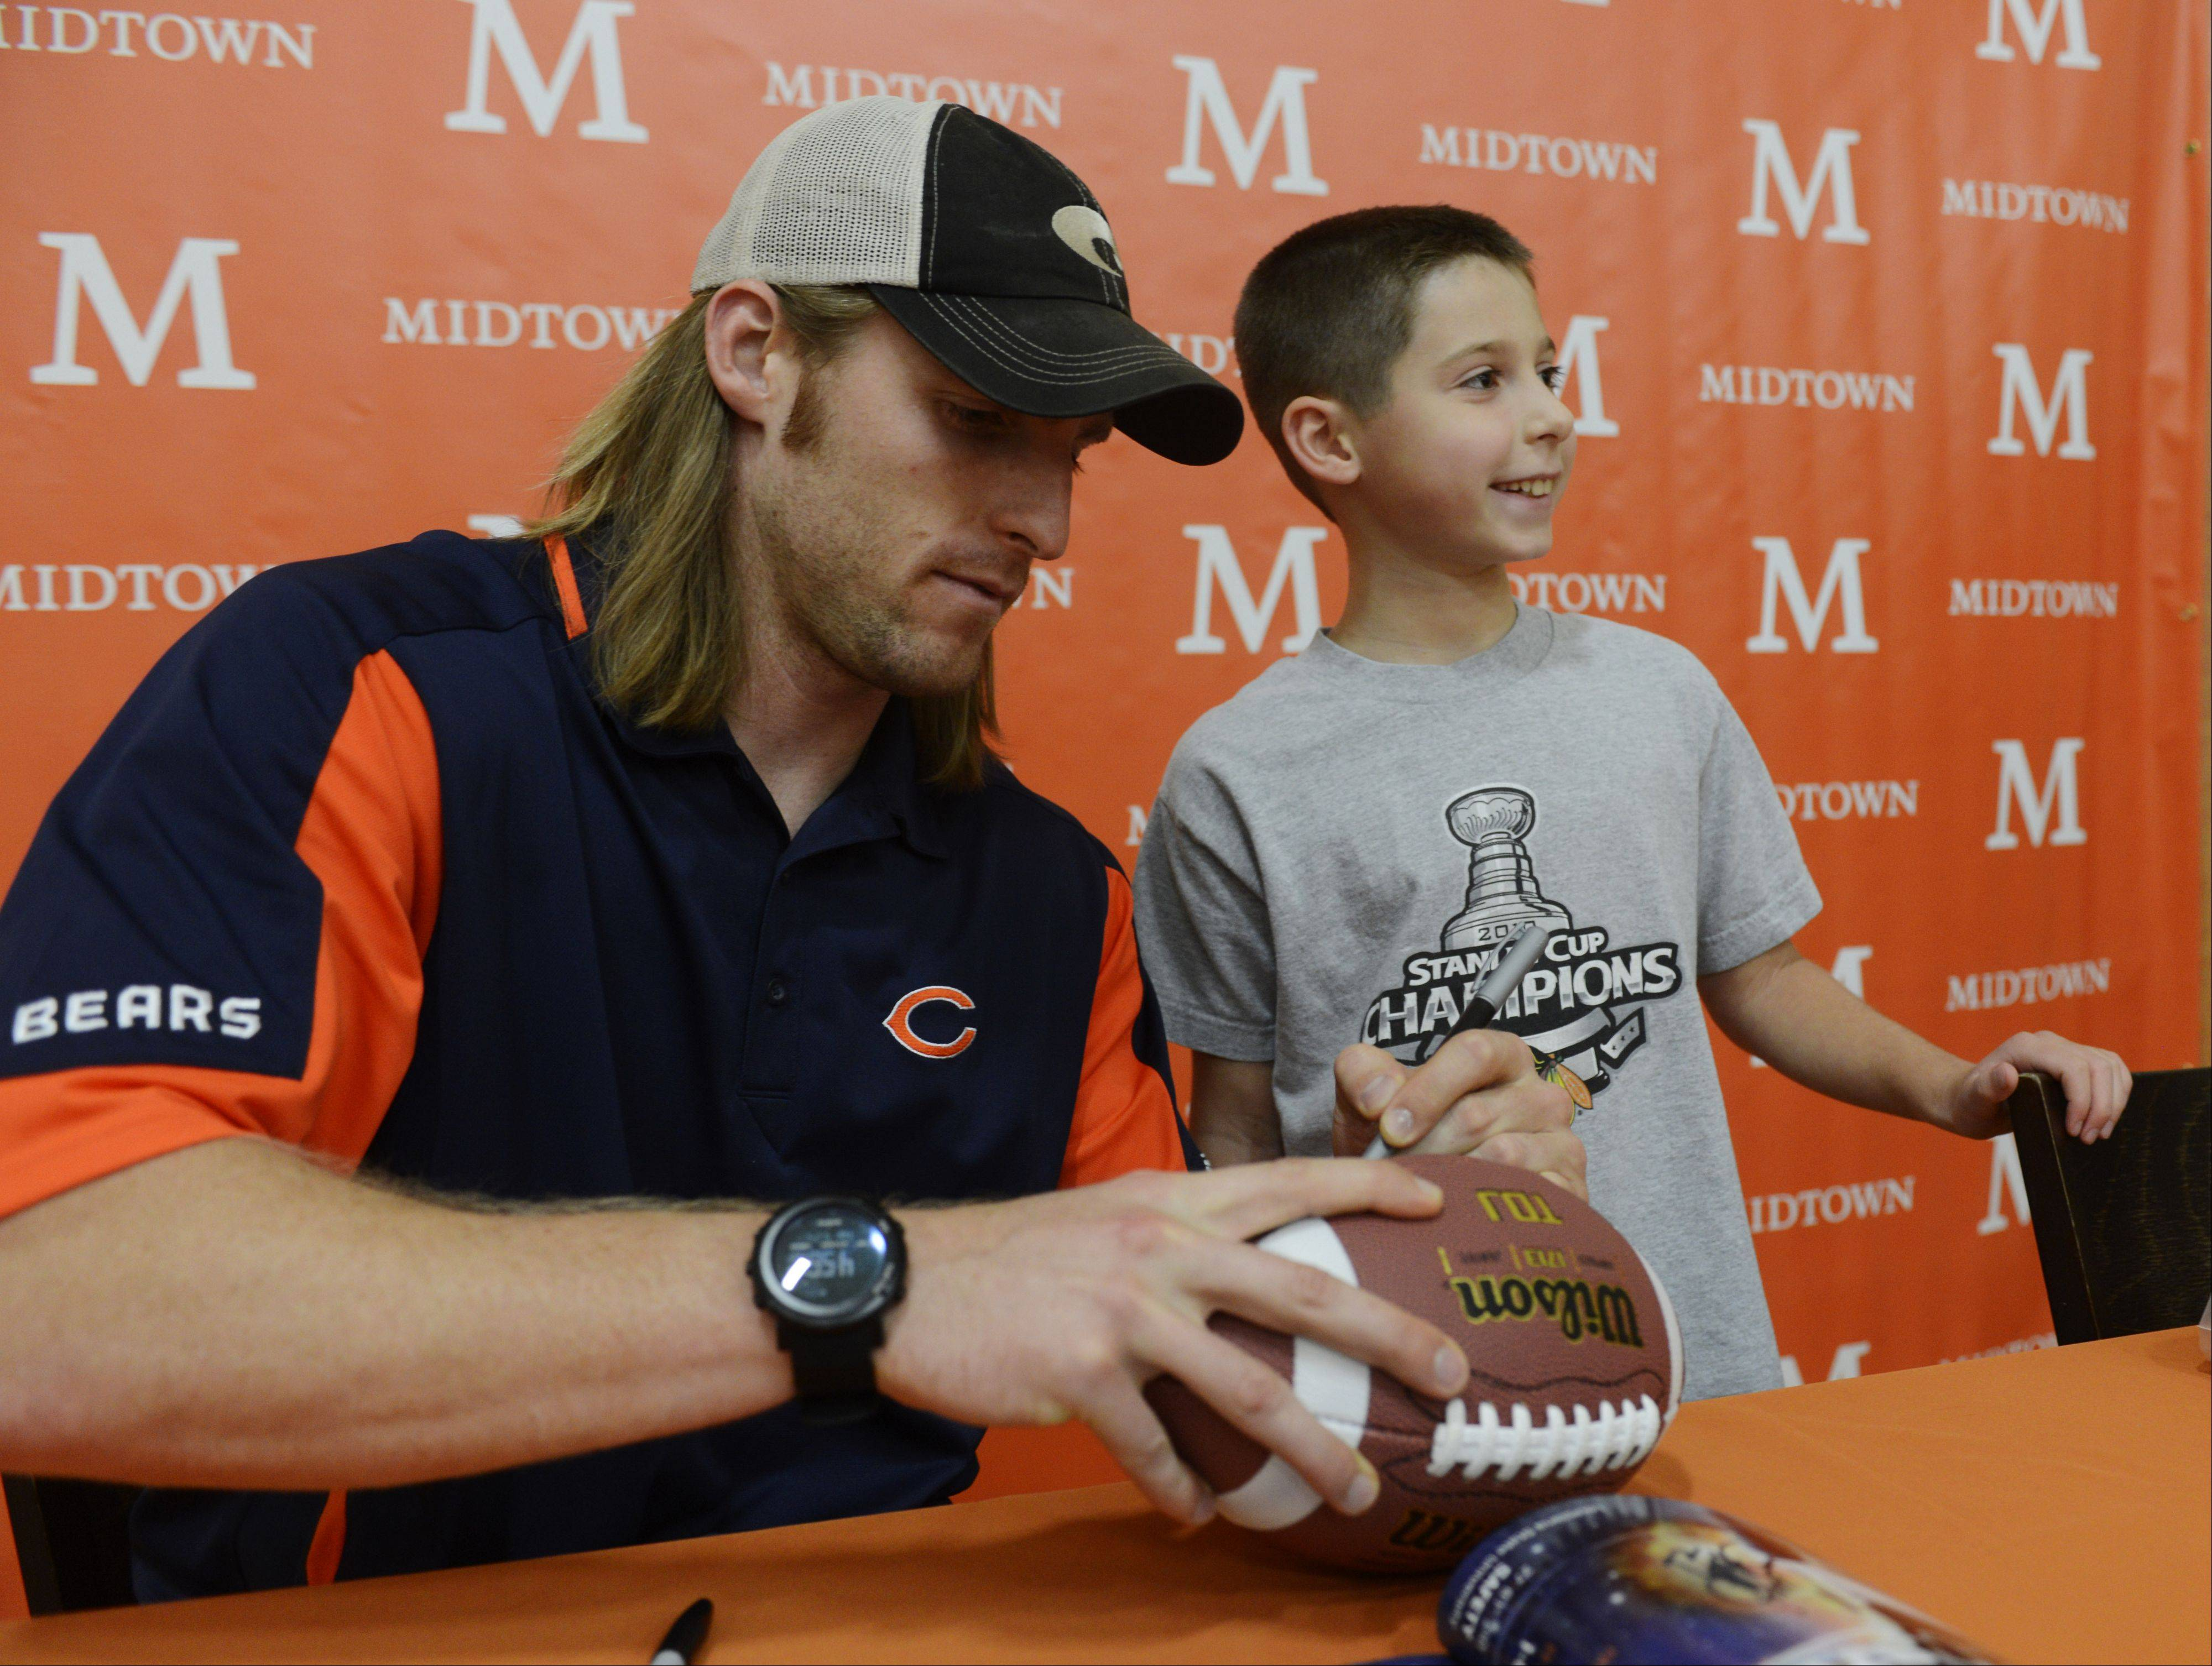 JOE LEWNARD/jlewnard@dailyherald.com Chicago Bears safety Craig Steltz signs a football for Connor Nichols, 9, of Palatine during a fitness event Tuesday for children at the Midtown Athletic Club in Palatine Tuesday. The event served as a kickoff to Saturday's Midtown 5K Run & Walk to benefit Bears Care.